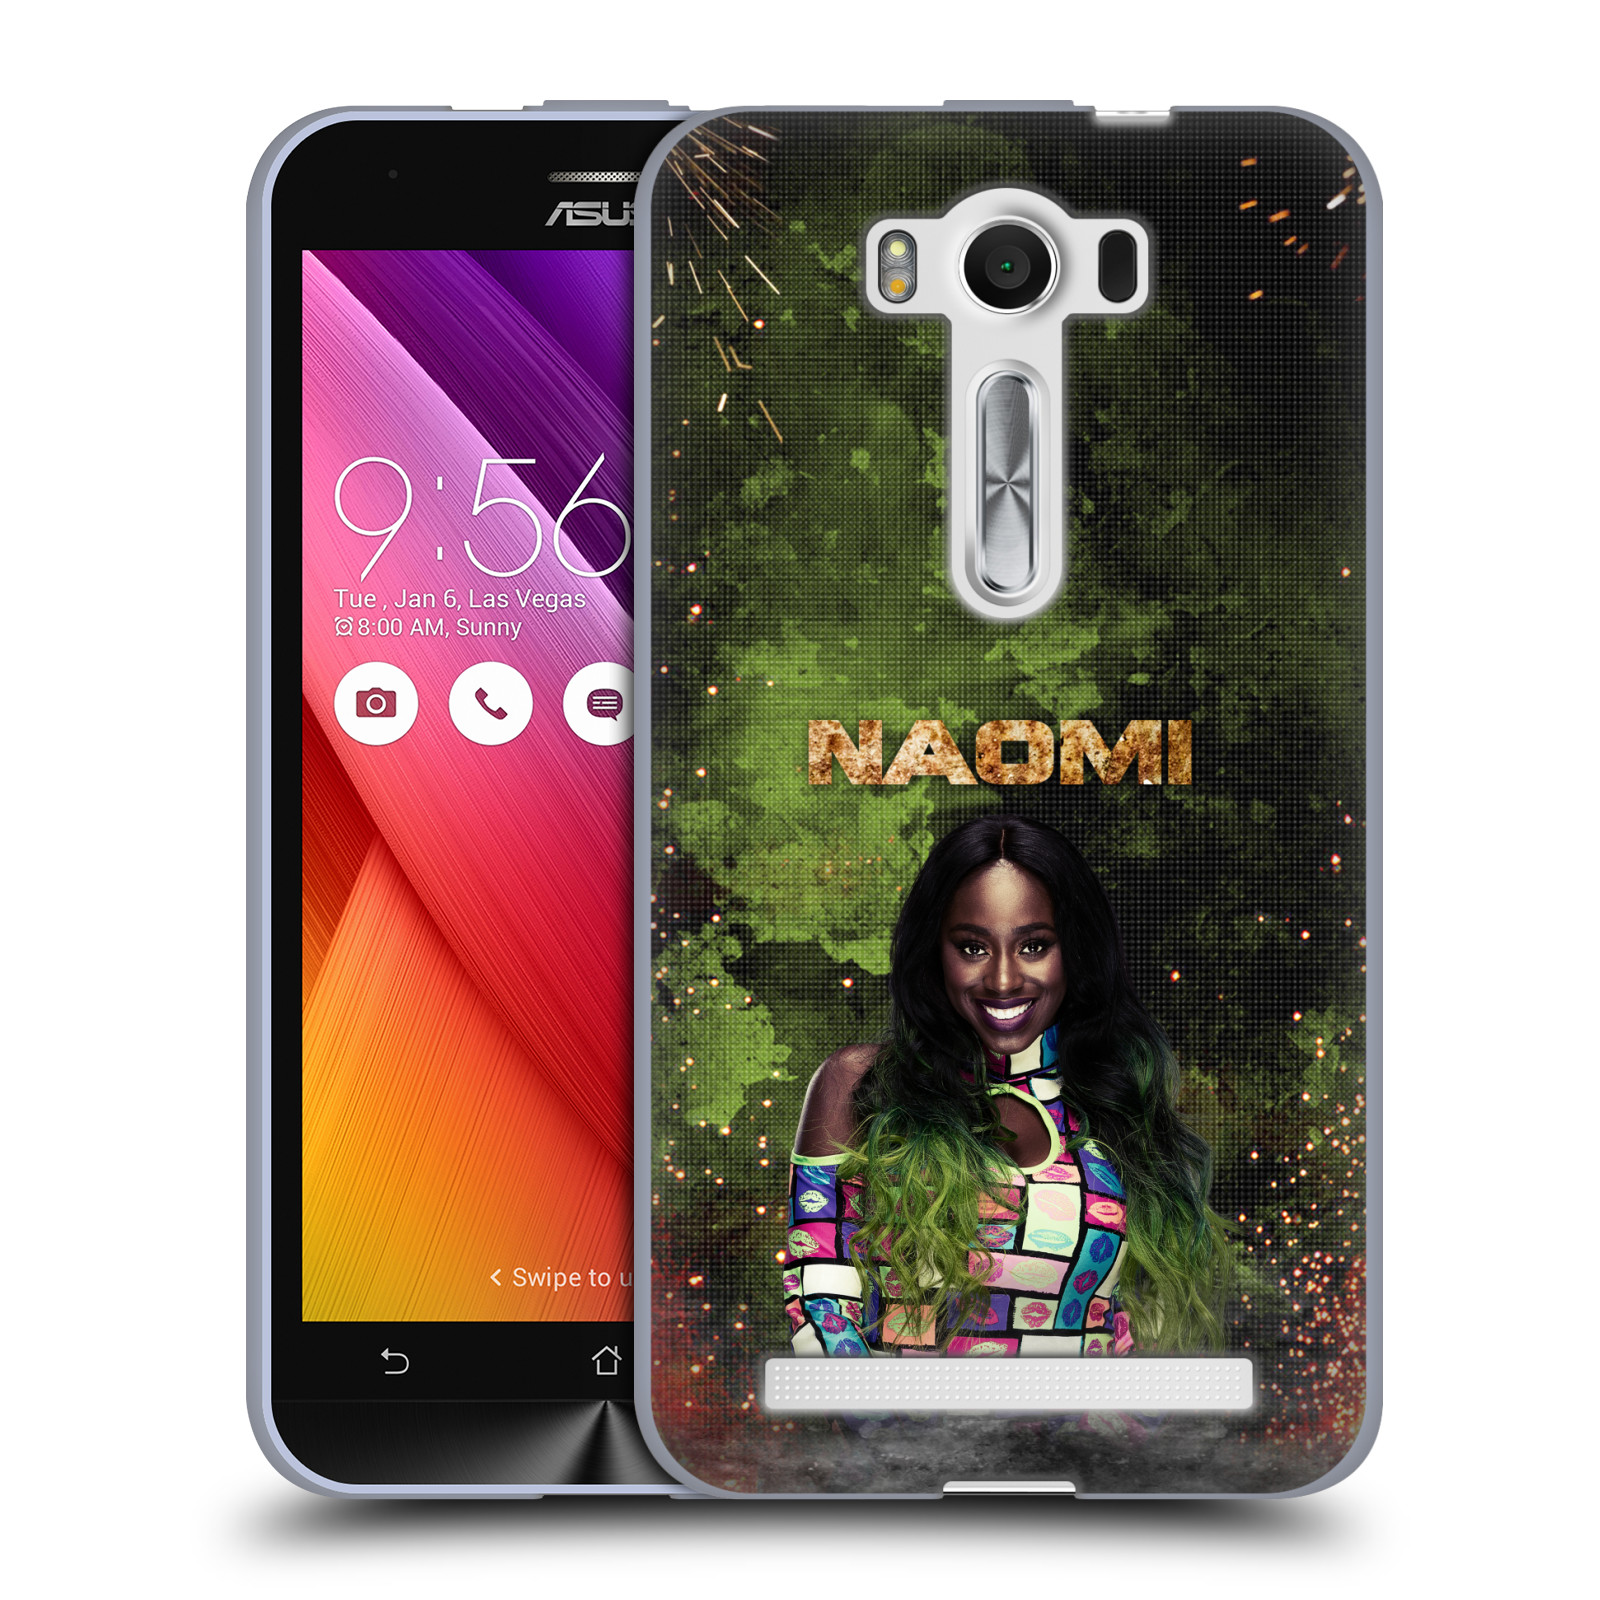 OFFICIAL WWE NAOMI SOFT GEL CASE FOR ASUS ZENFONE PHONES